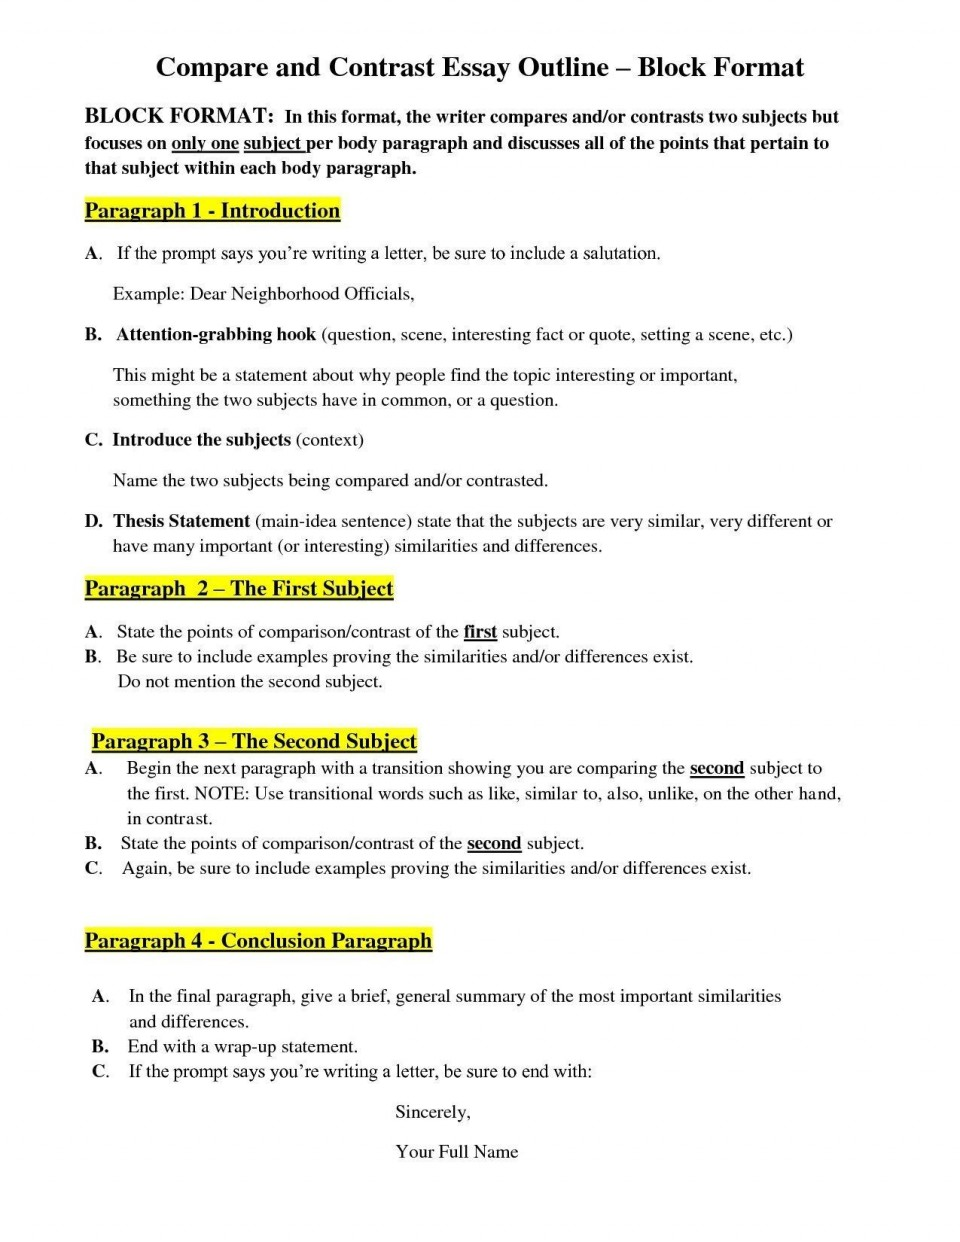 014 Essay Examplempare Andntrastmparison Best Examples Of Scenario In 6th Grade An Goo 3rd Food 5th Middle School Block Format Pdf High 4th Vs Striking Compare And Contrast Example Elementary Fourth For College Students 960